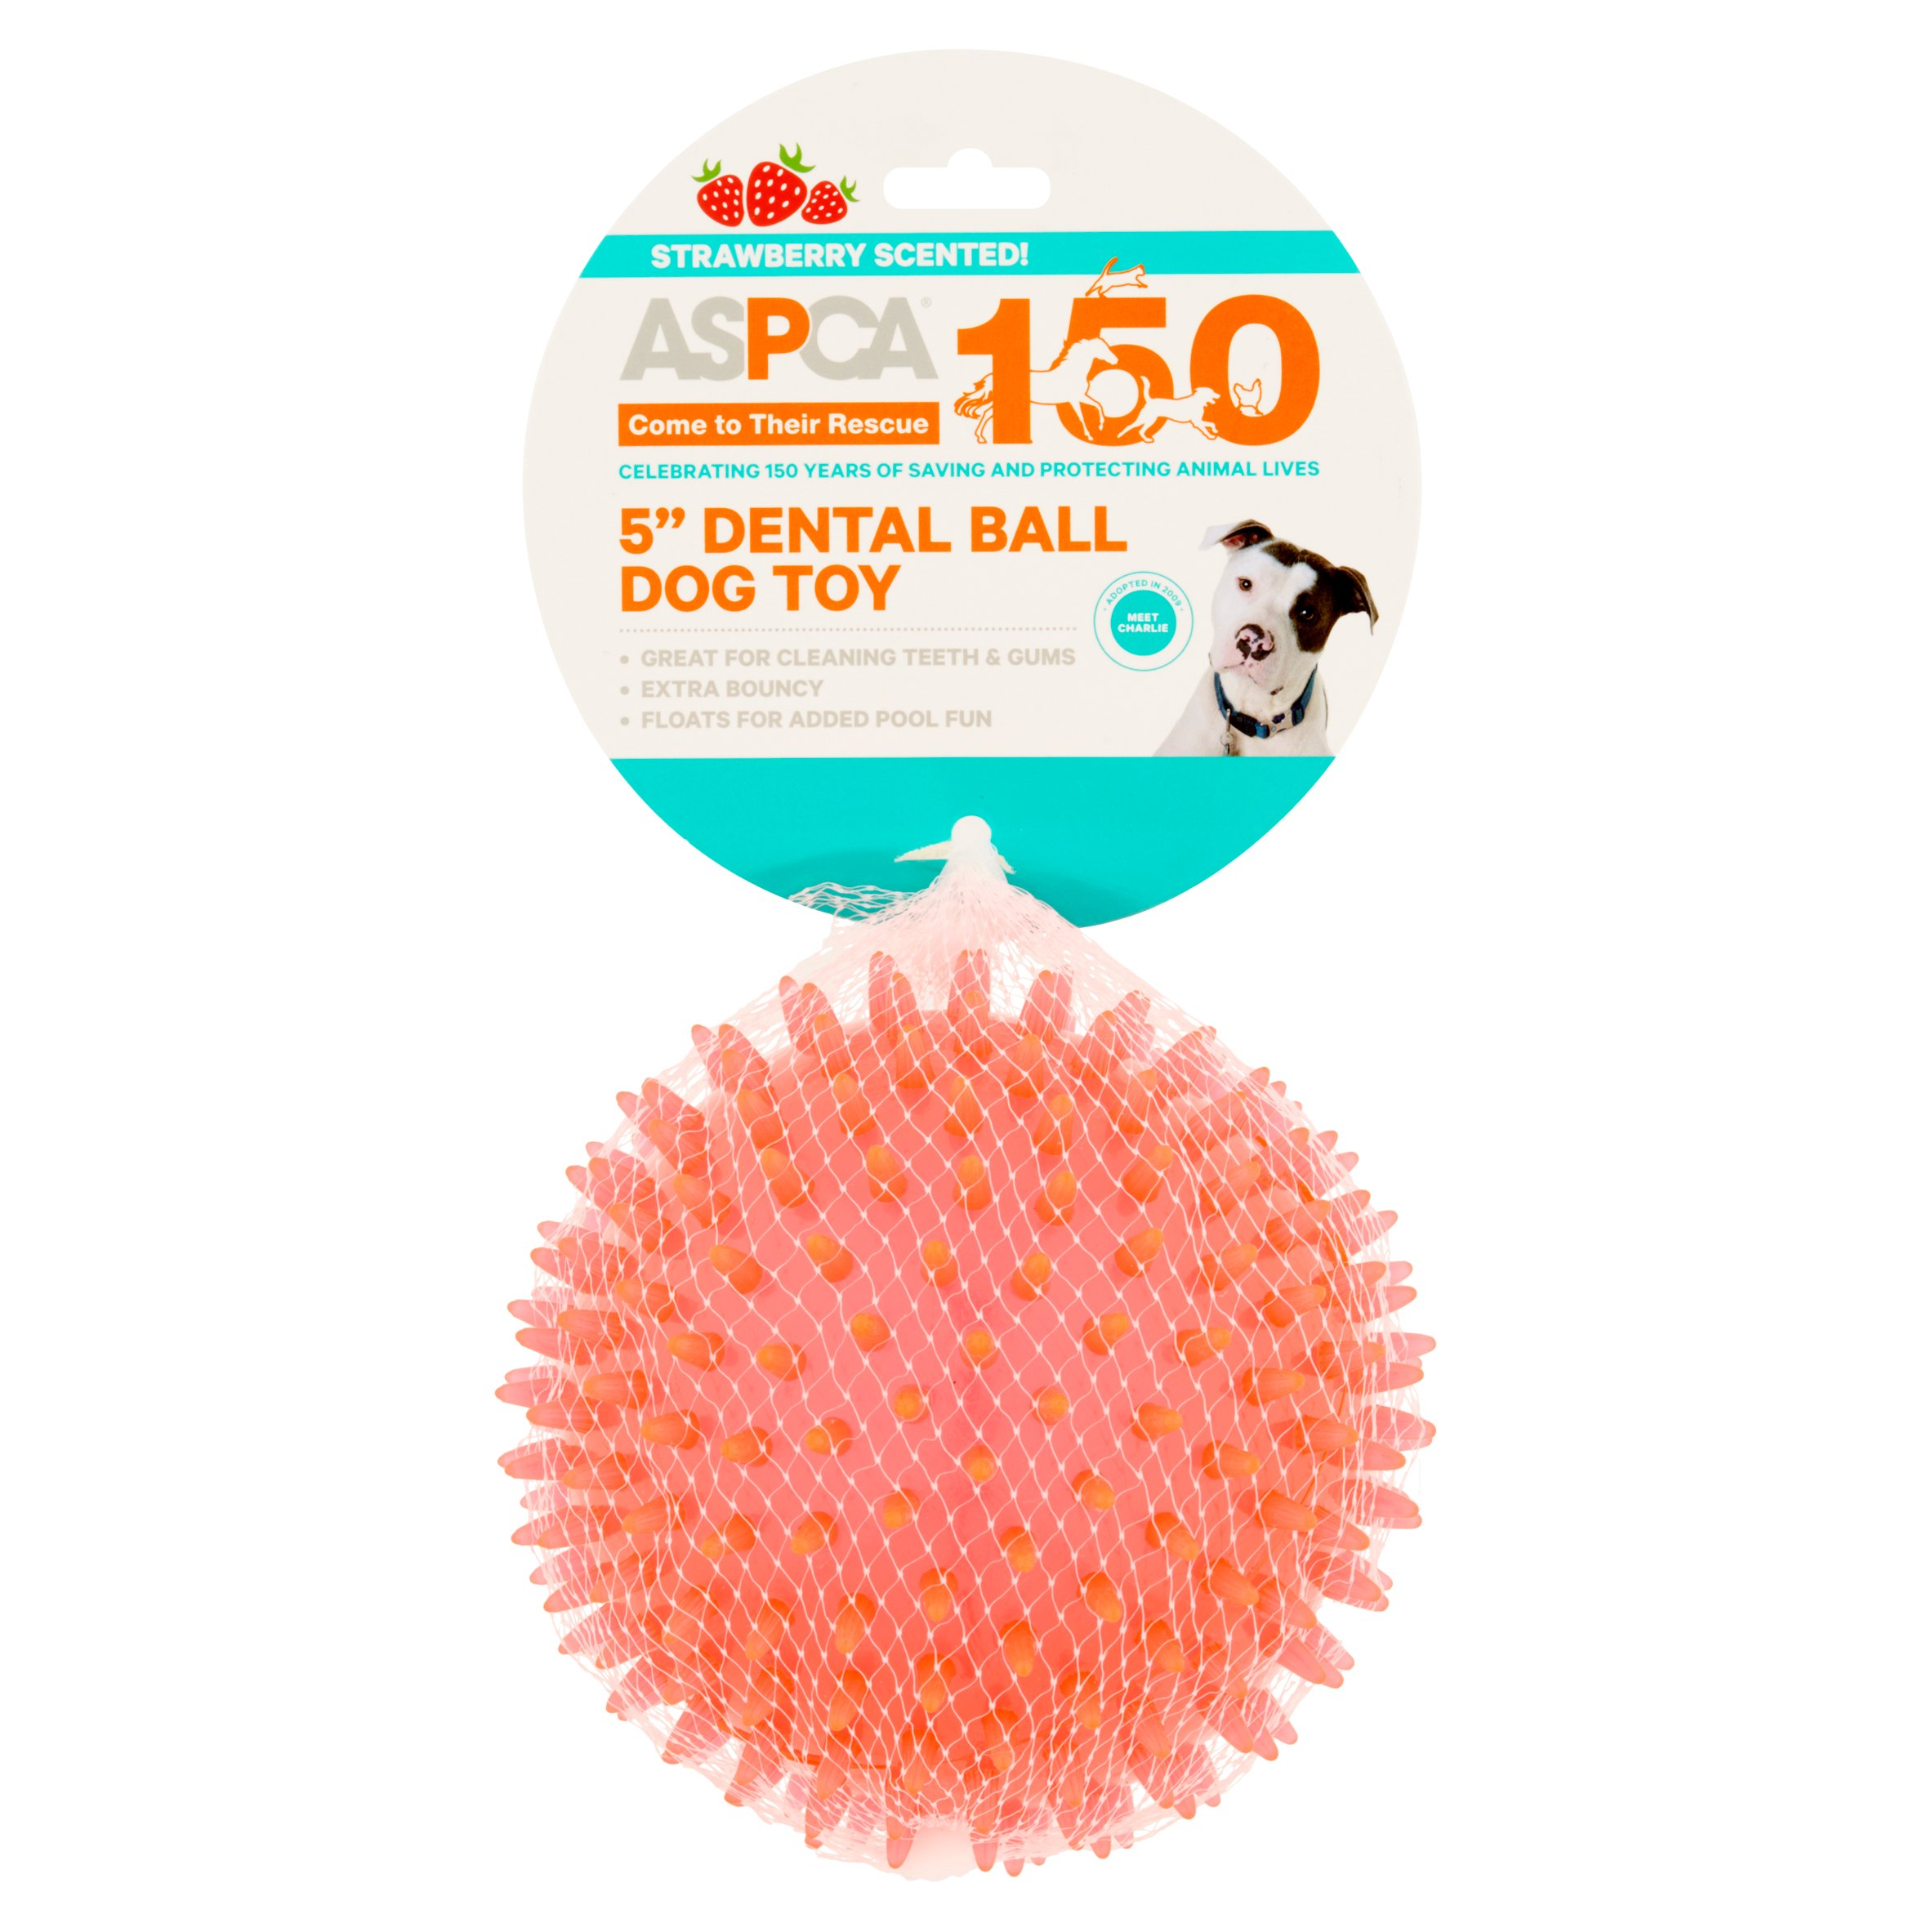 "ASPCA 5"" Dental Ball Dog Toy by European Home Designs, LLC"